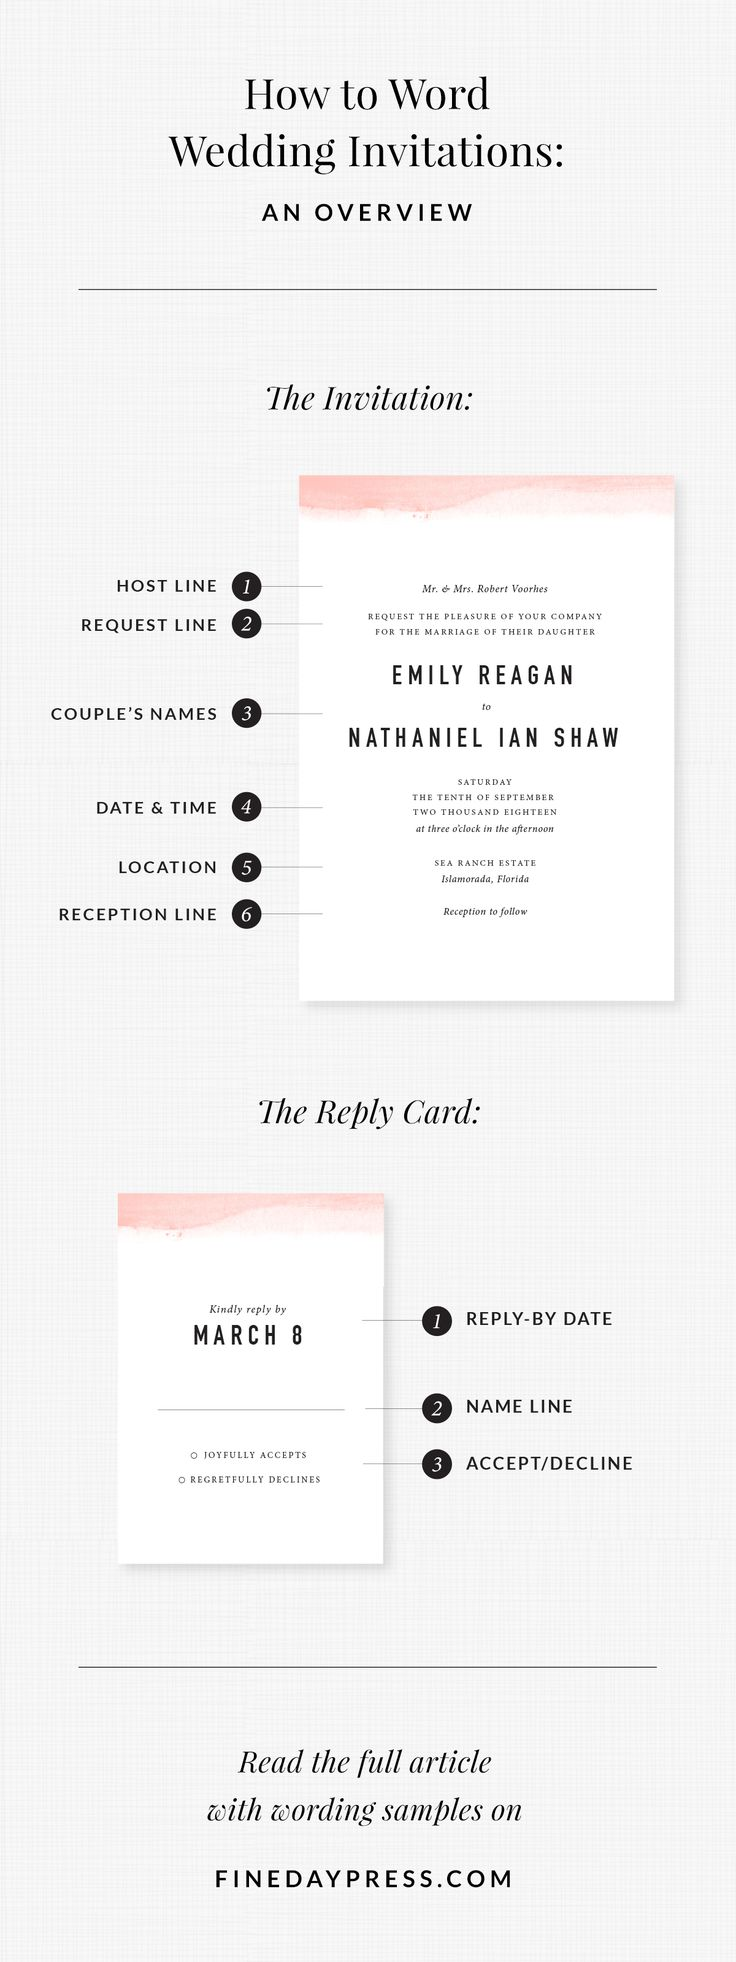 How to Word Wedding Invitations - a wedding invitation wording guide, with samples for different scenarios, from Fine Day Press